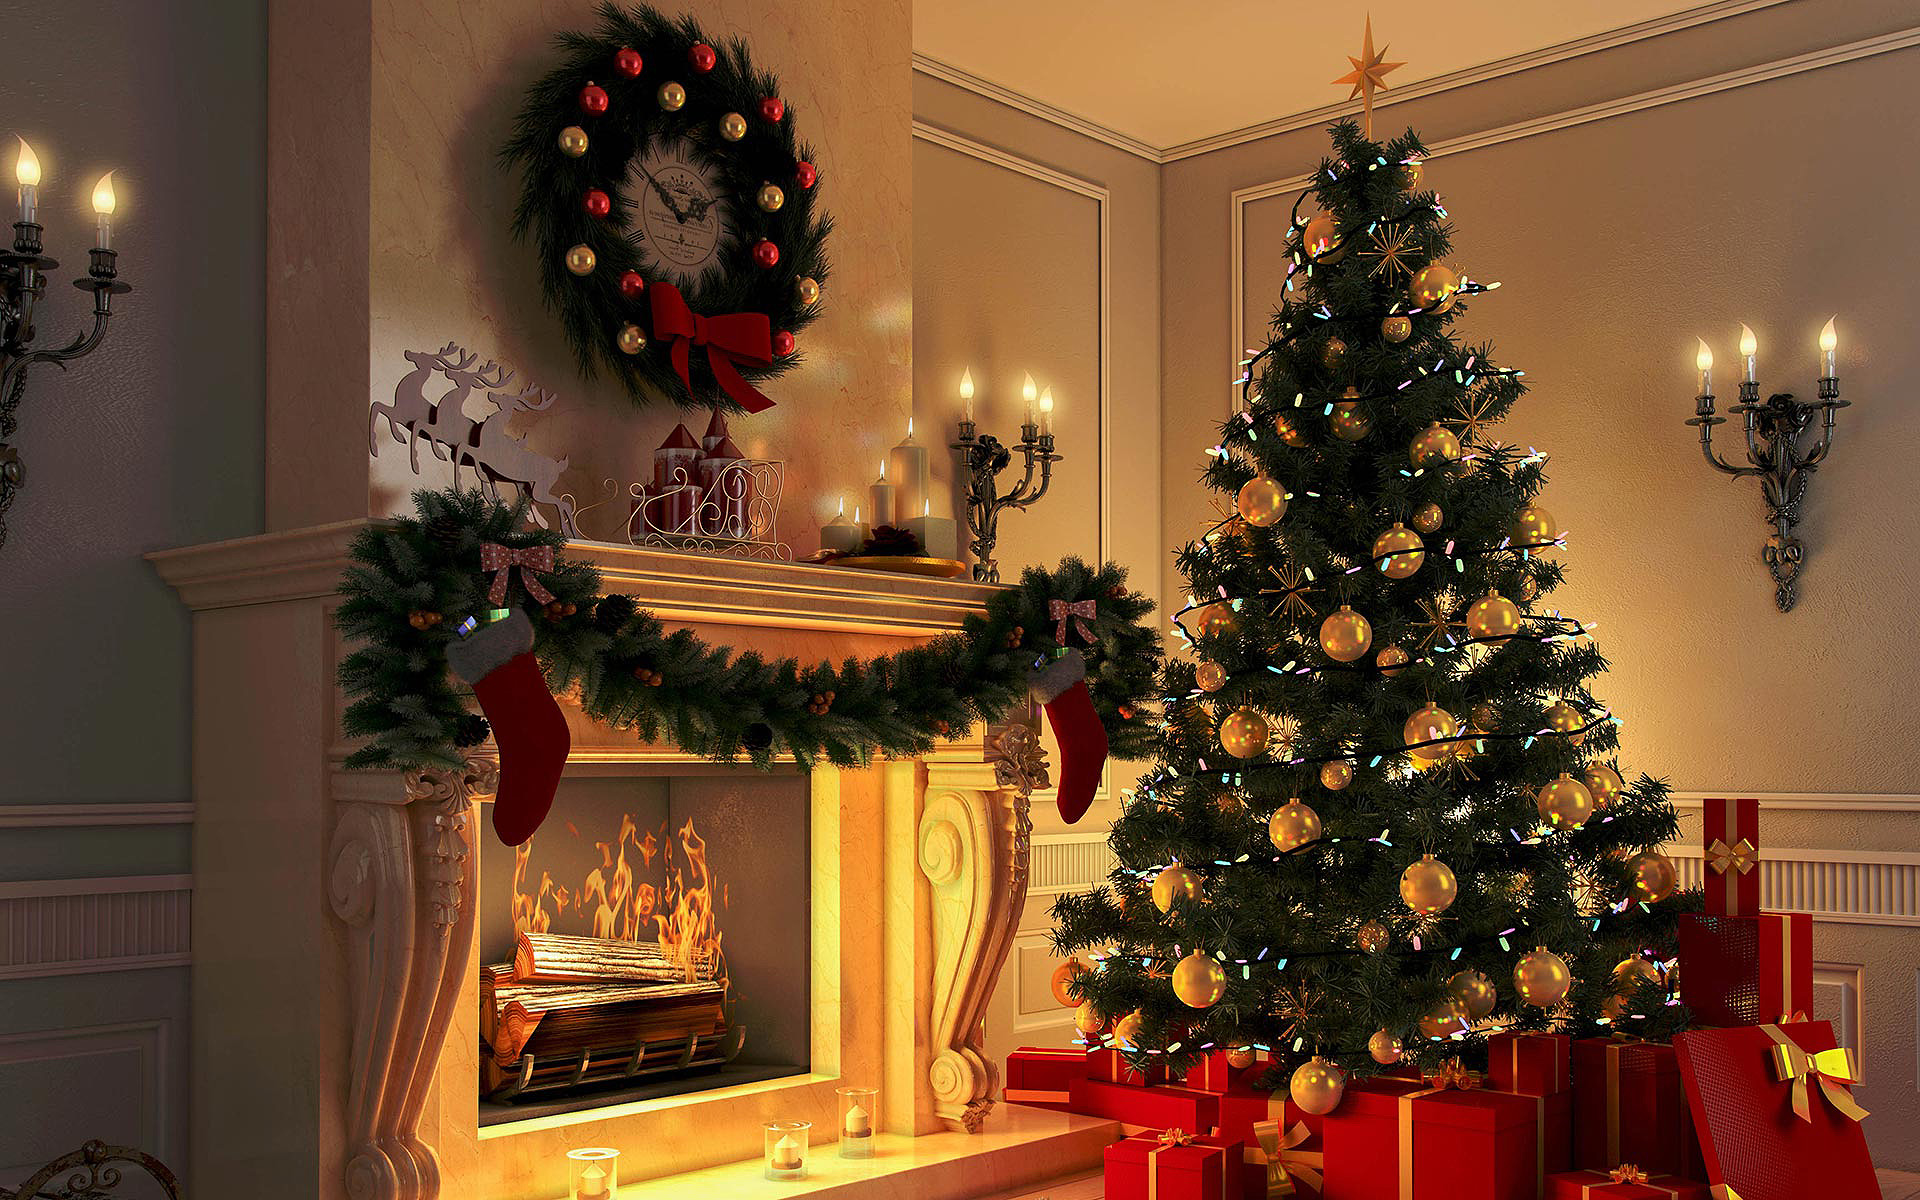 Рождество, камин, елка, Christmas, fireplace, tree,